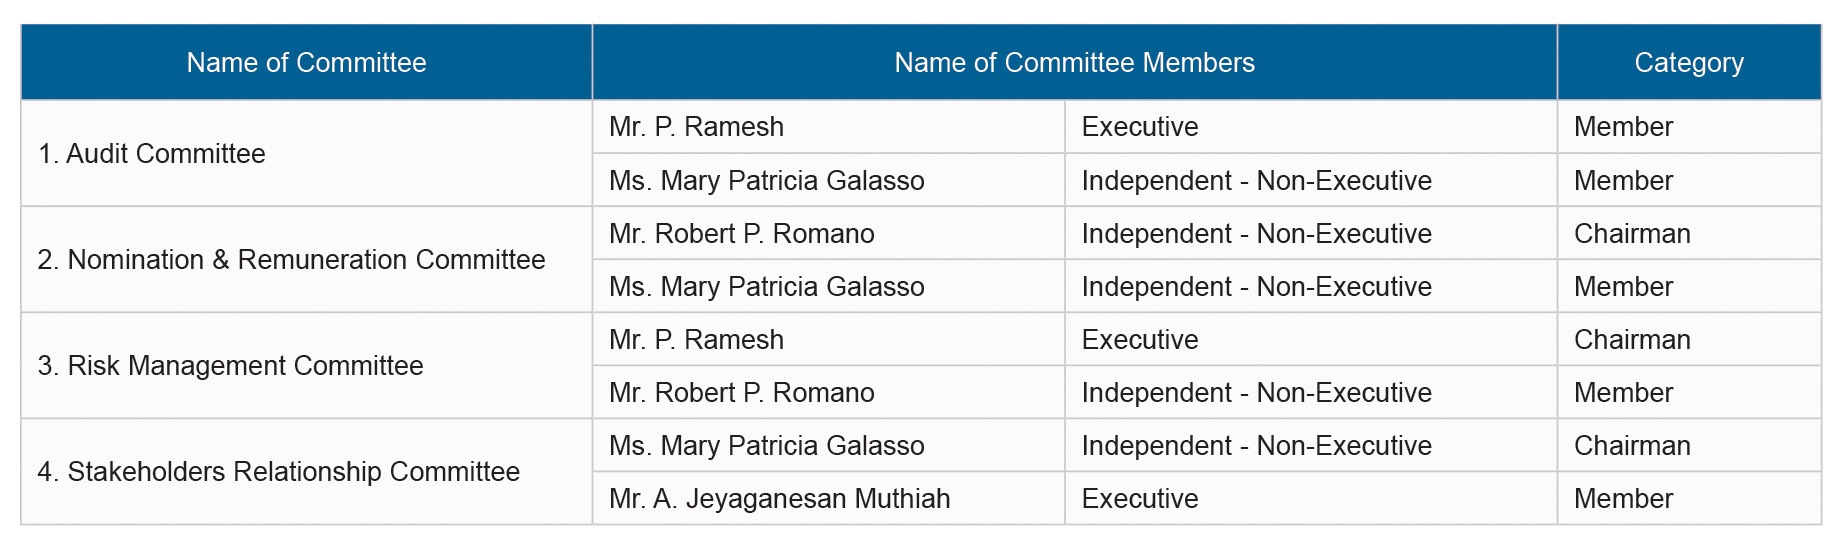 Composition of Committee Table